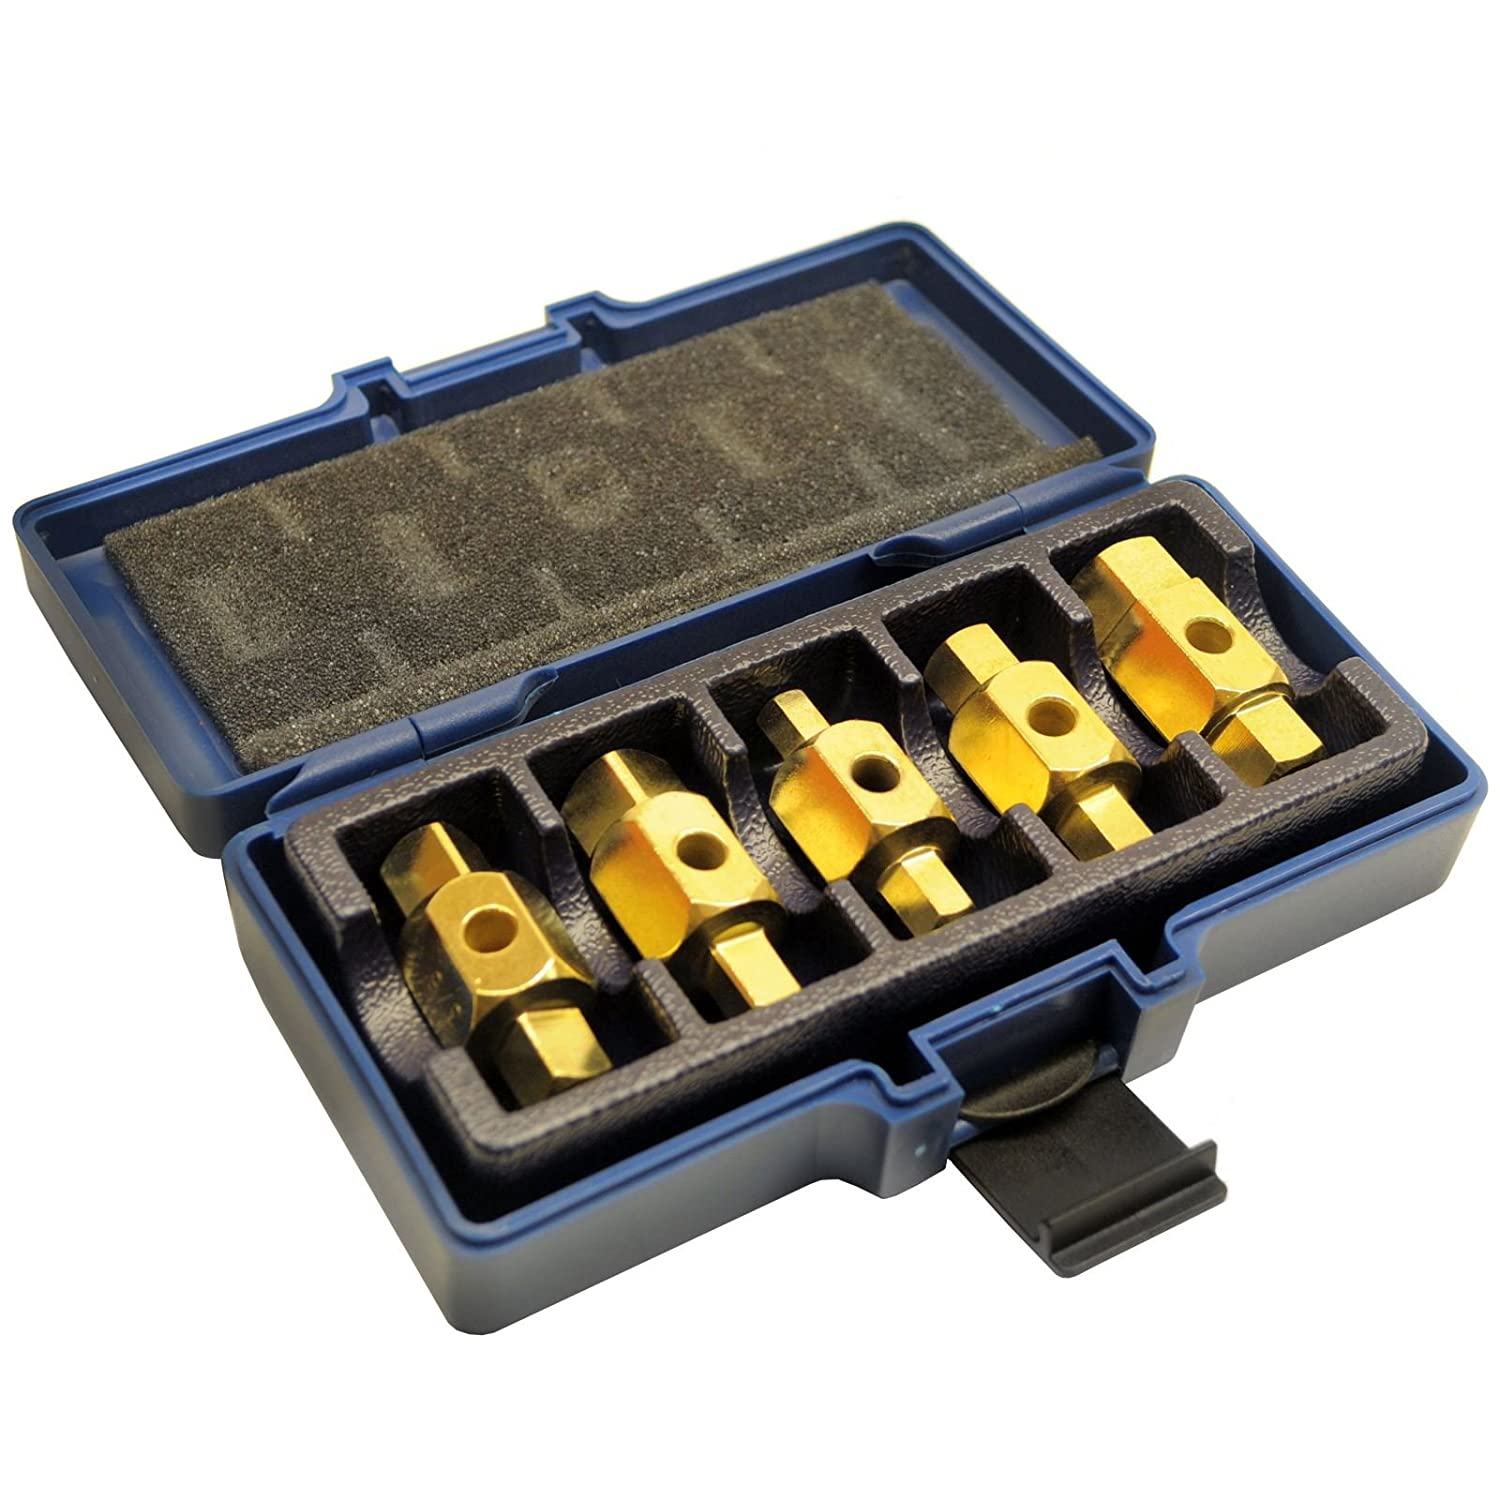 Supercrazy 16pcs Damaged Glow Plug Removal Remover Tool Kit 8mm /& 10mm SF0031